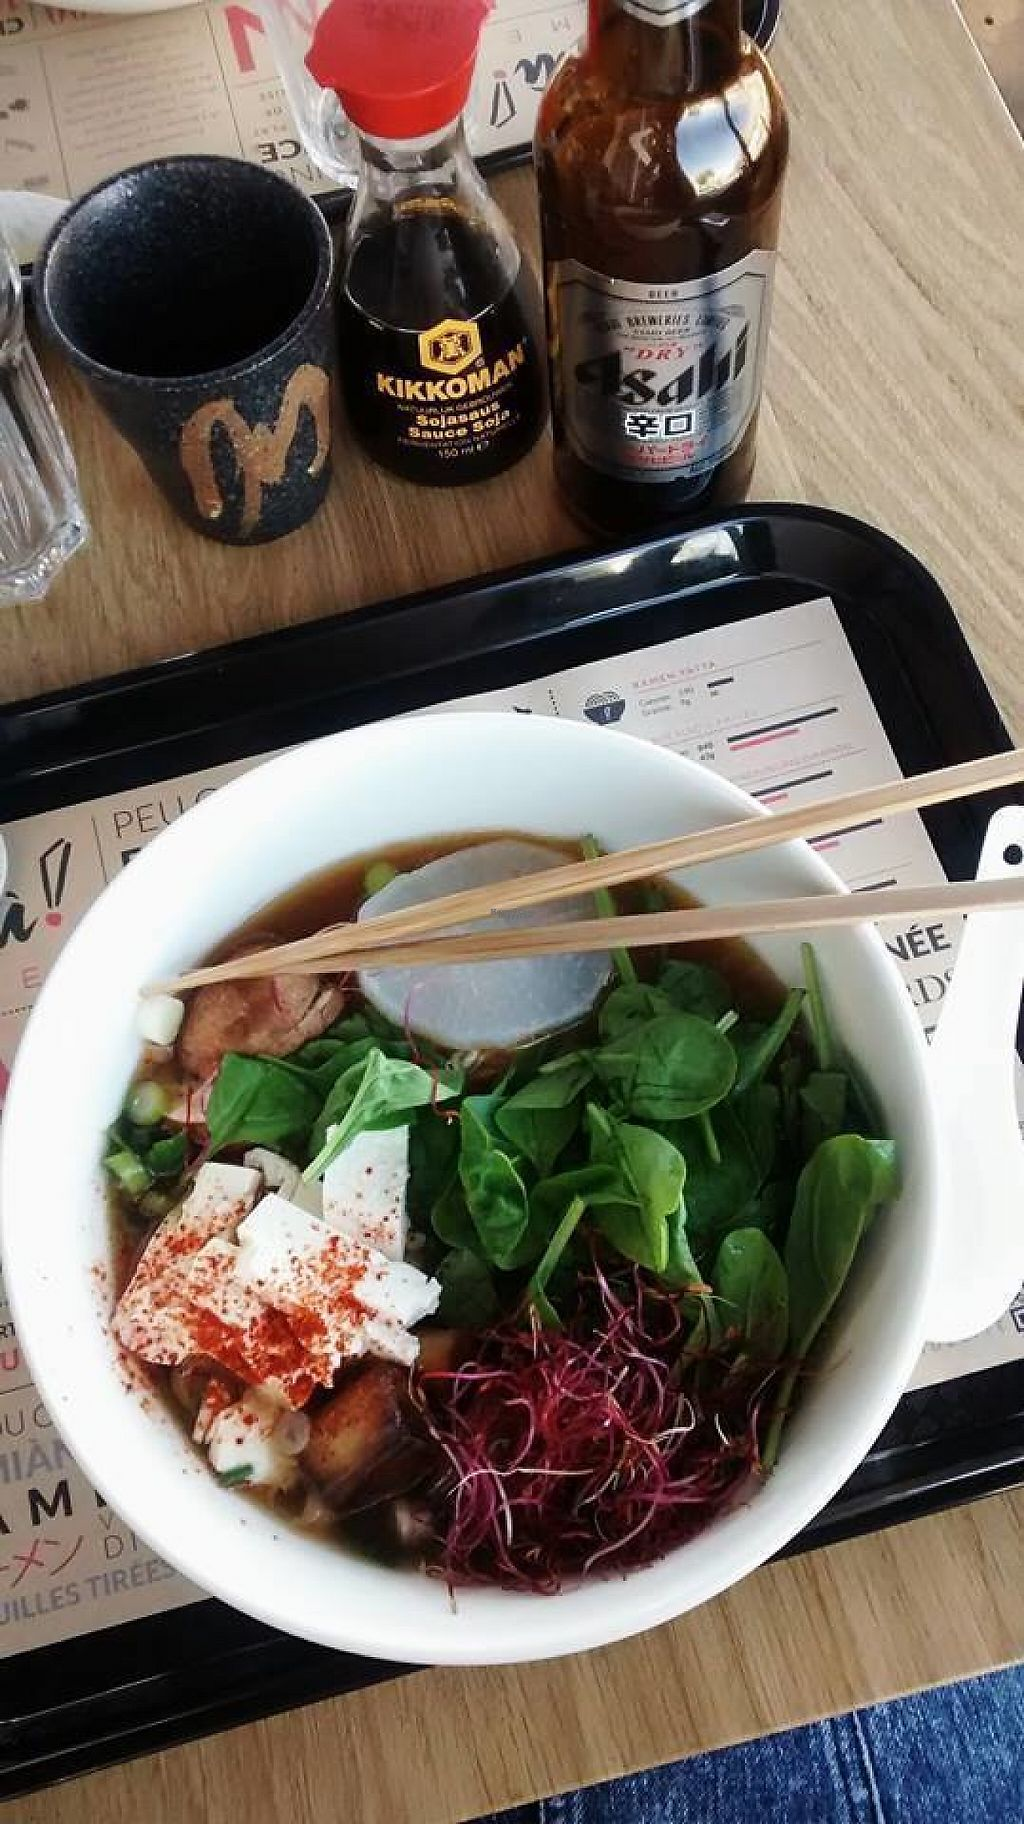 """Photo of Yatta Ramen  by <a href=""""/members/profile/BlisterBlue"""">BlisterBlue</a> <br/>The Vegan Ramen <br/> December 19, 2016  - <a href='/contact/abuse/image/84147/202881'>Report</a>"""